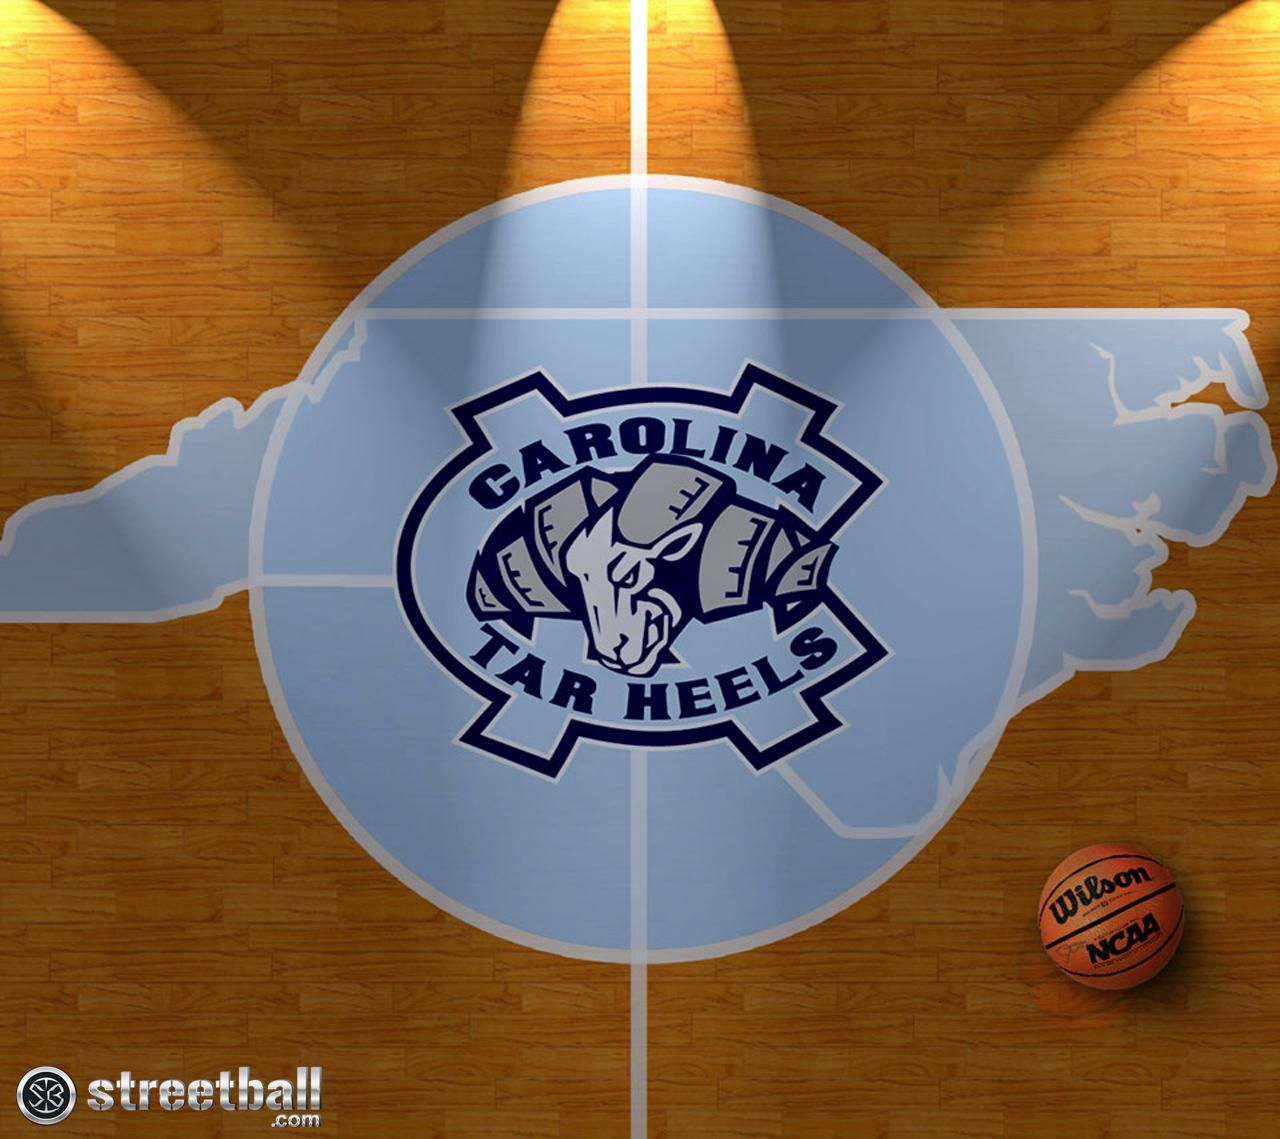 Unc Tar Heels Live Wallpapers Android Apps On Google Play 1920 1080